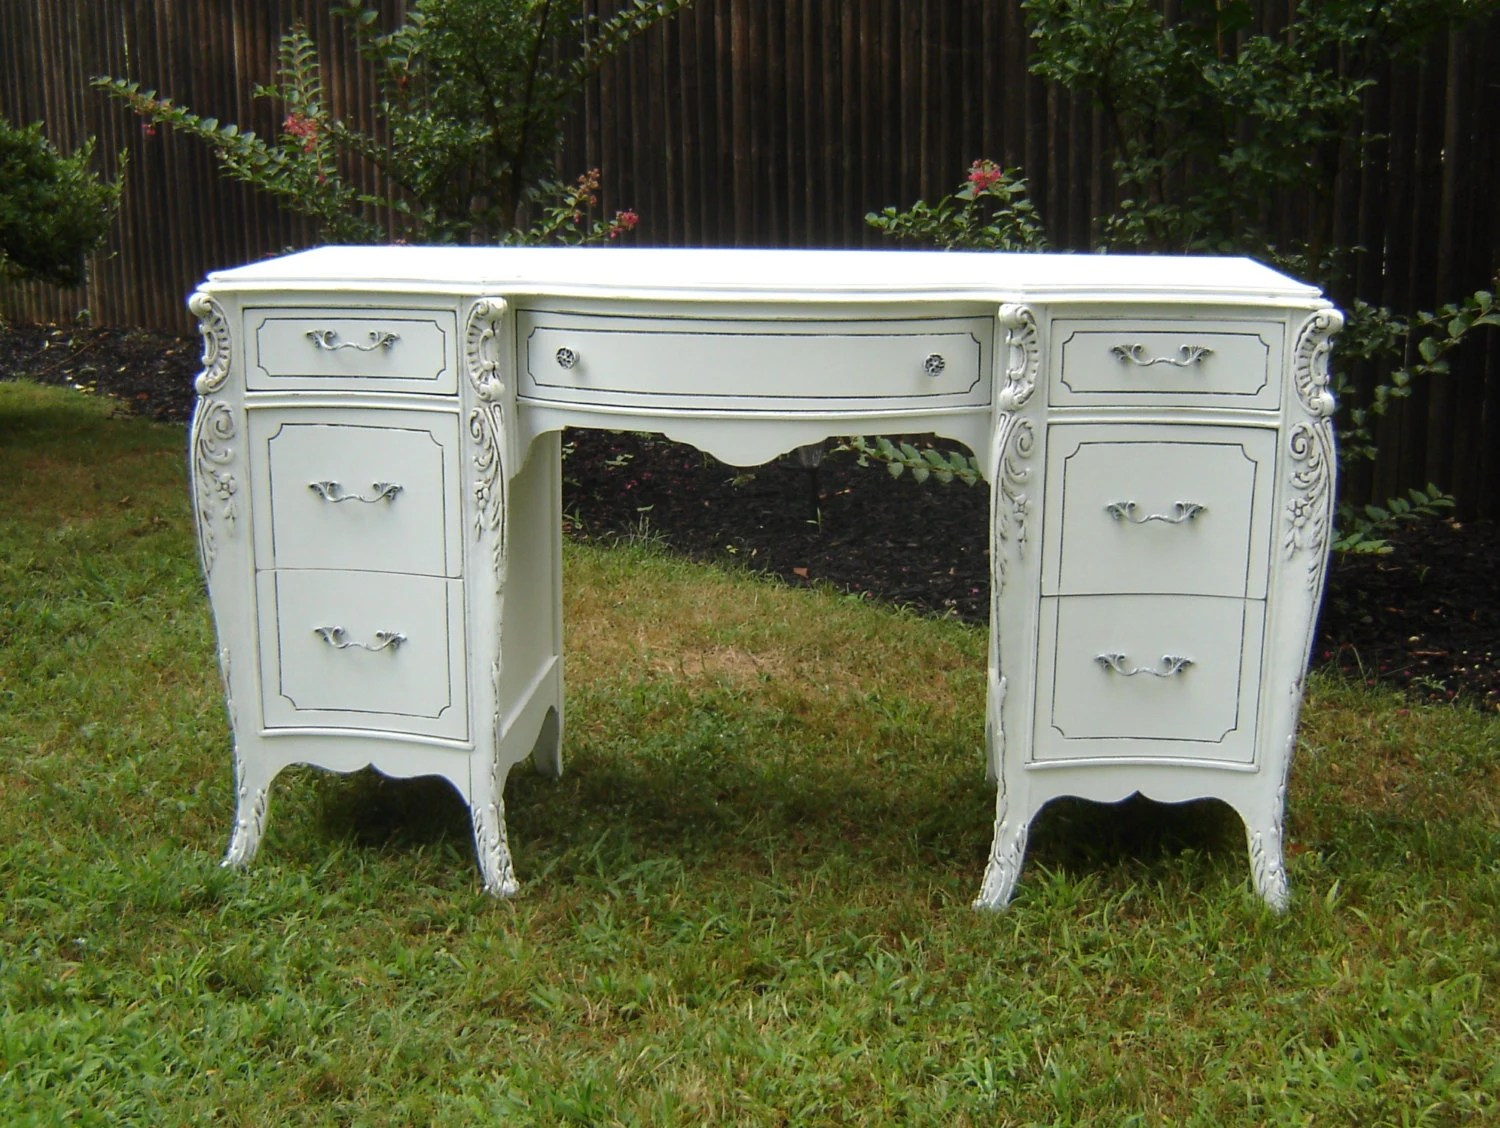 Antique White Ornate Desk Shabby Chic Furniture